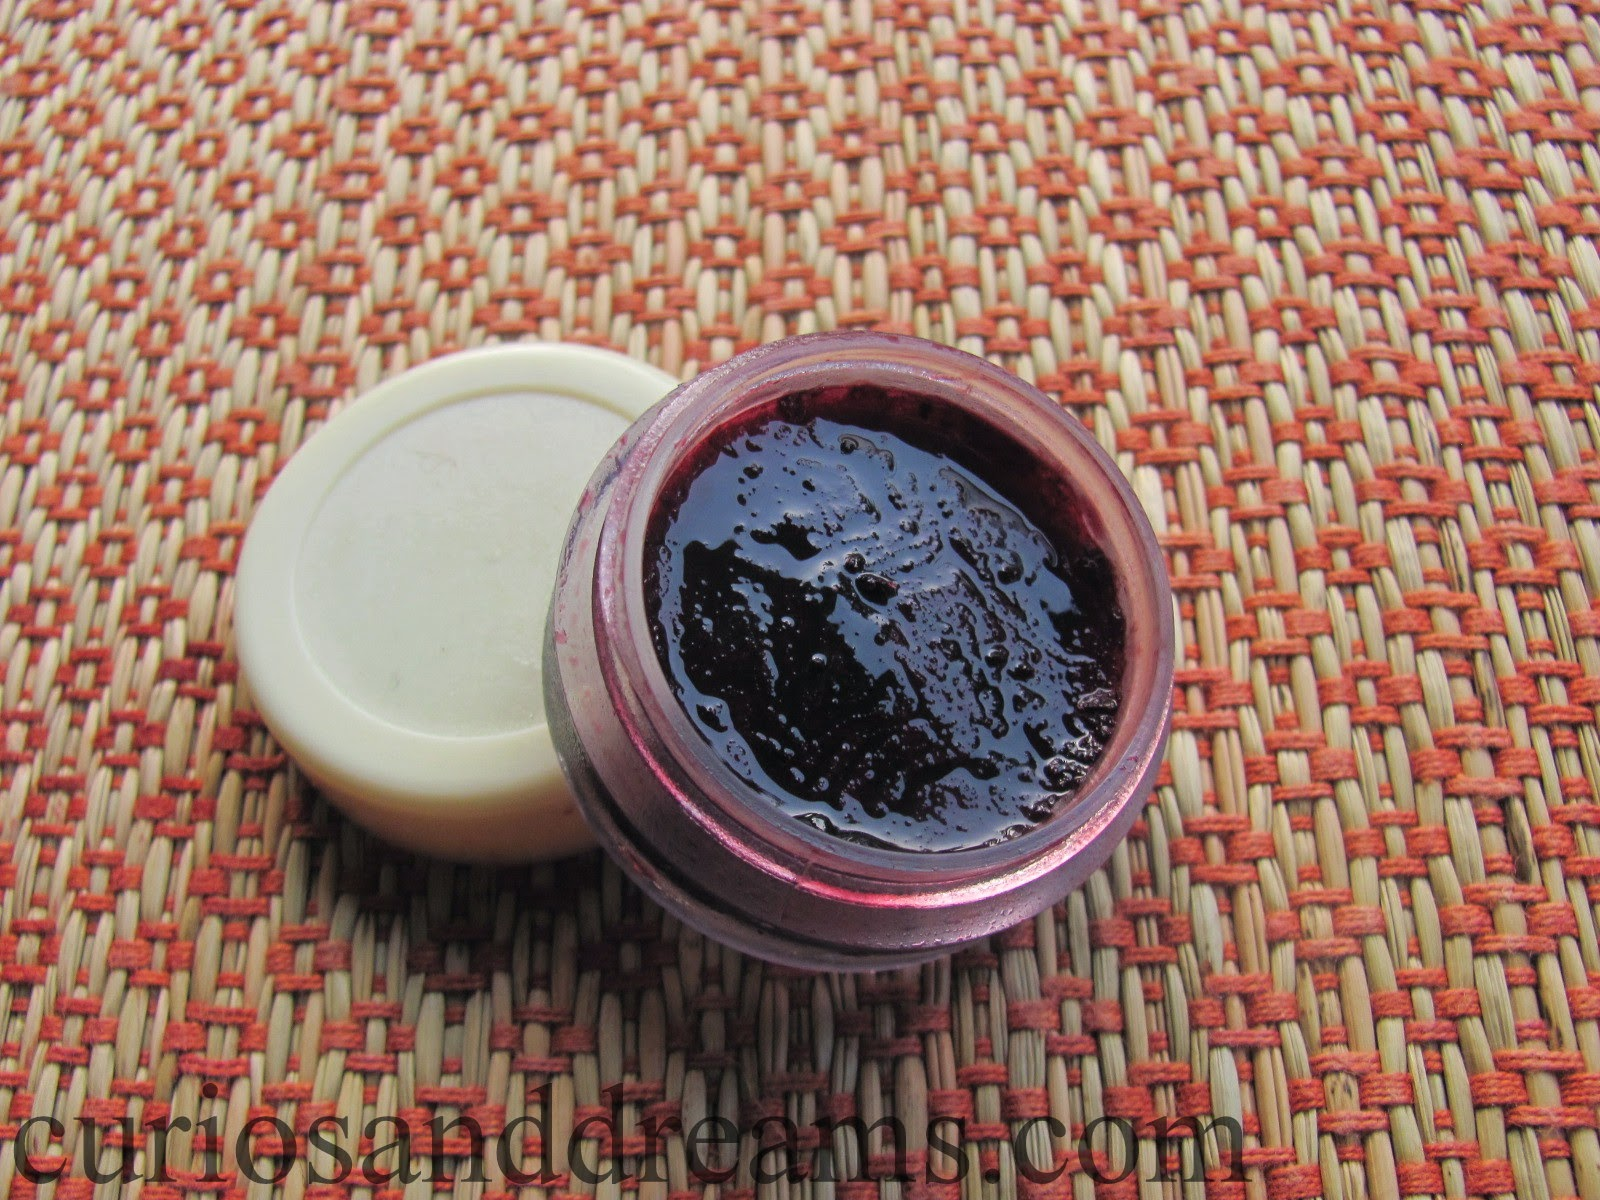 Beetroot Cheek and Lip Stain